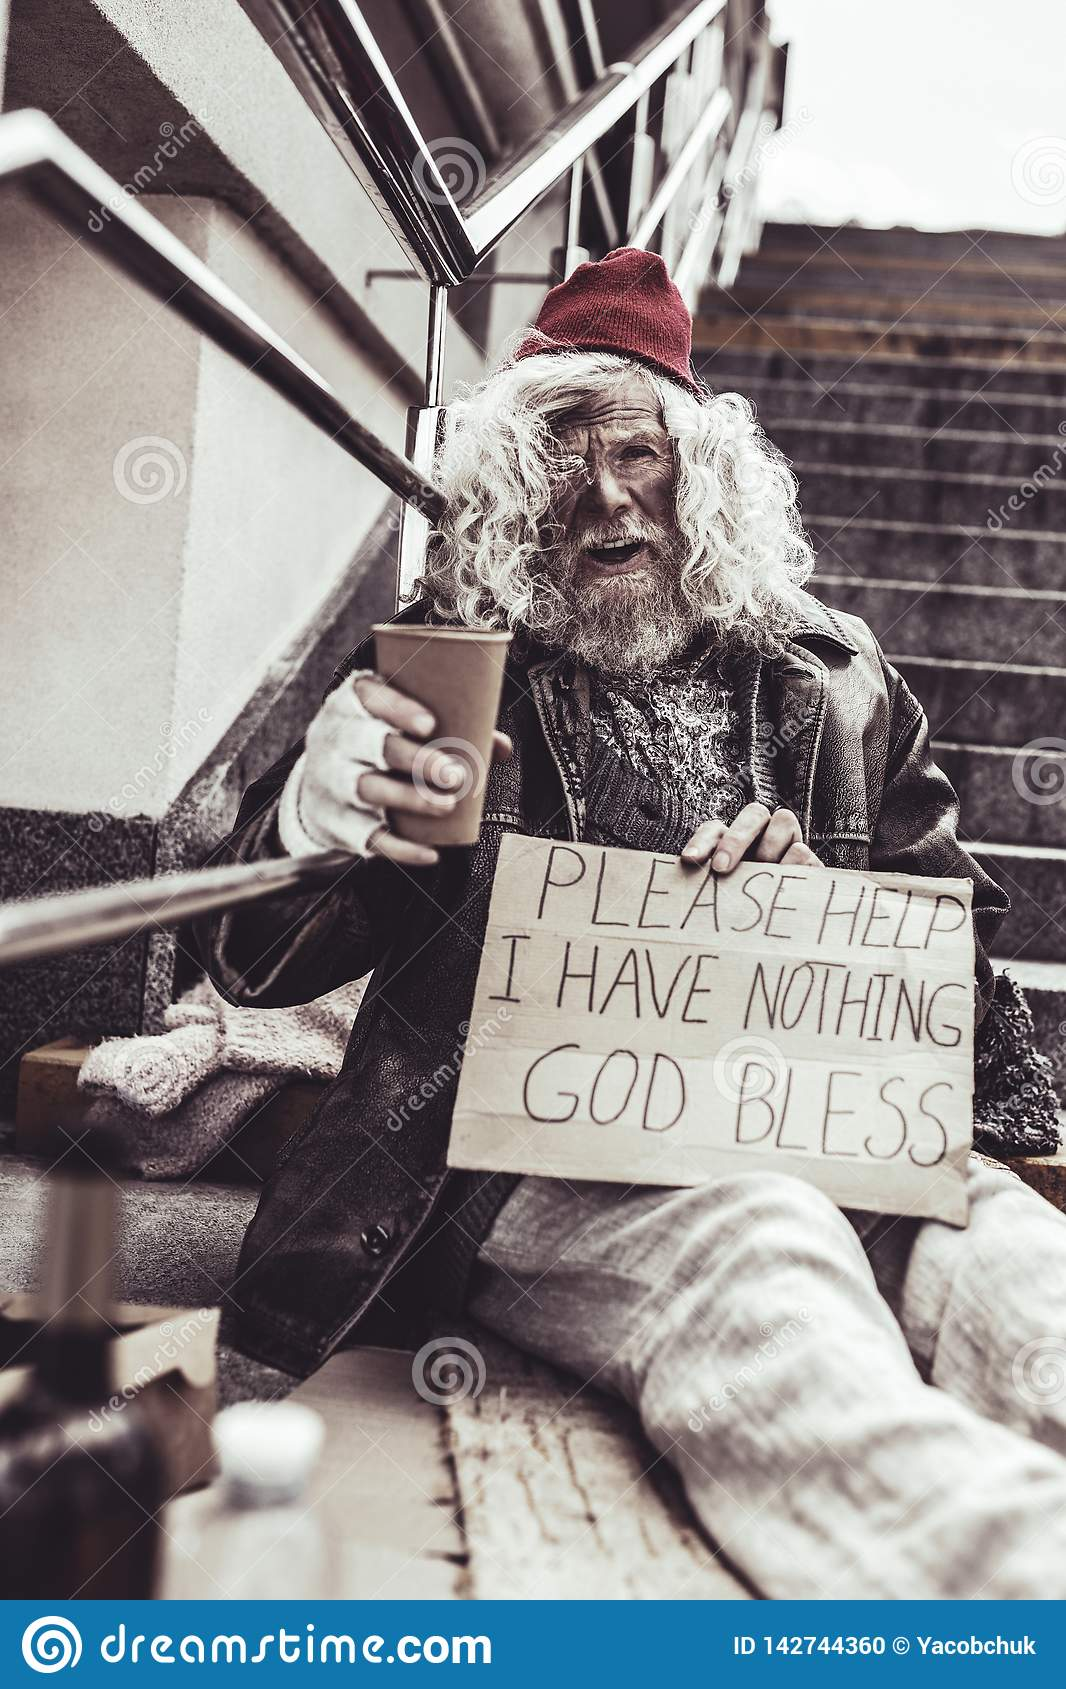 Desperate beggar sitting outside and writing poster asking for help.